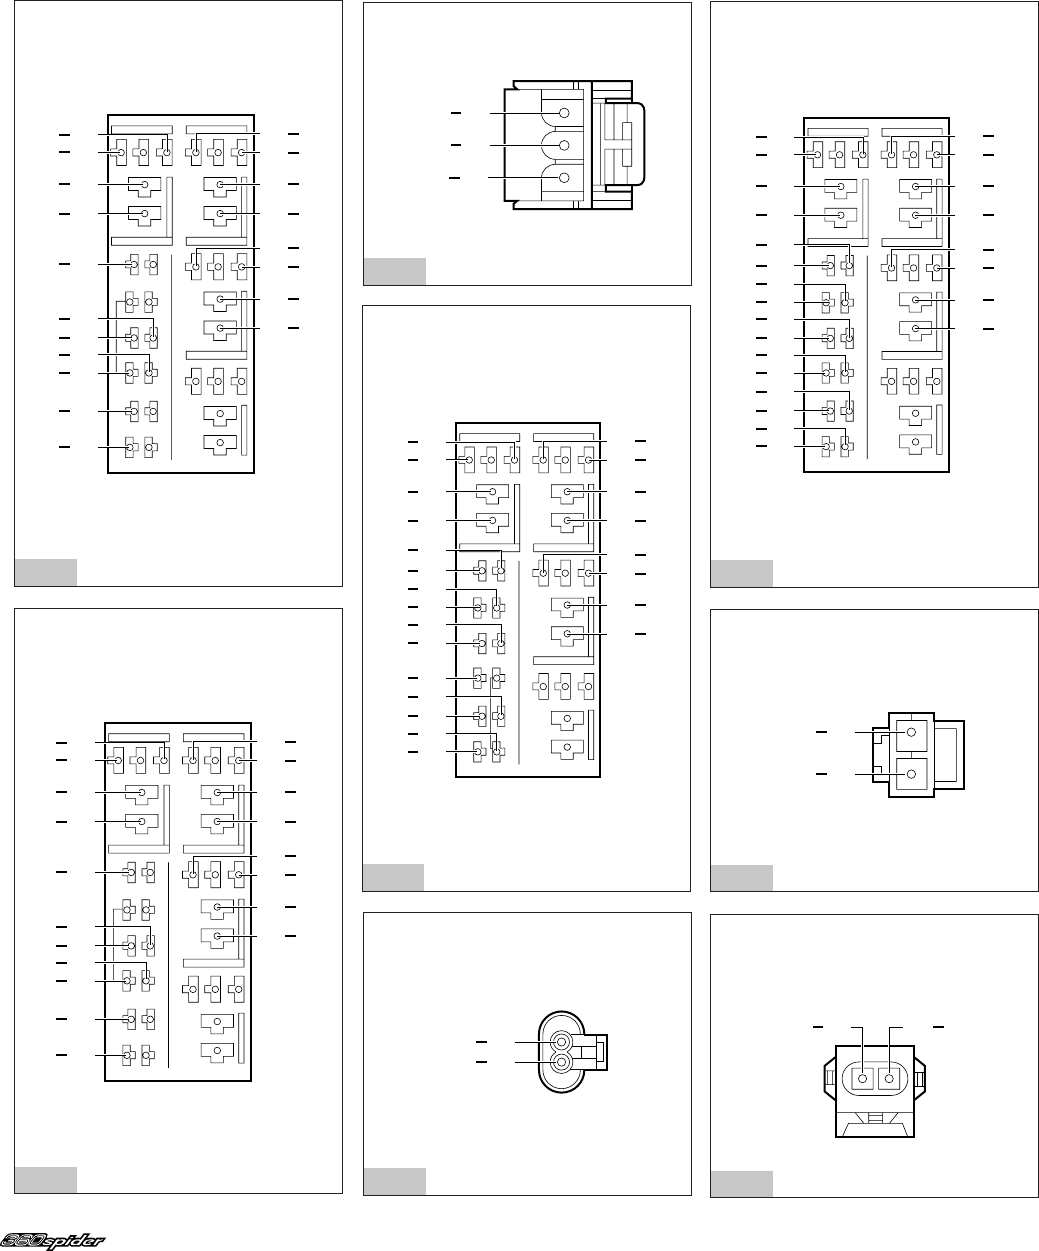 ferrari 360 misc documents wiring diagrams pdf page 3. Black Bedroom Furniture Sets. Home Design Ideas